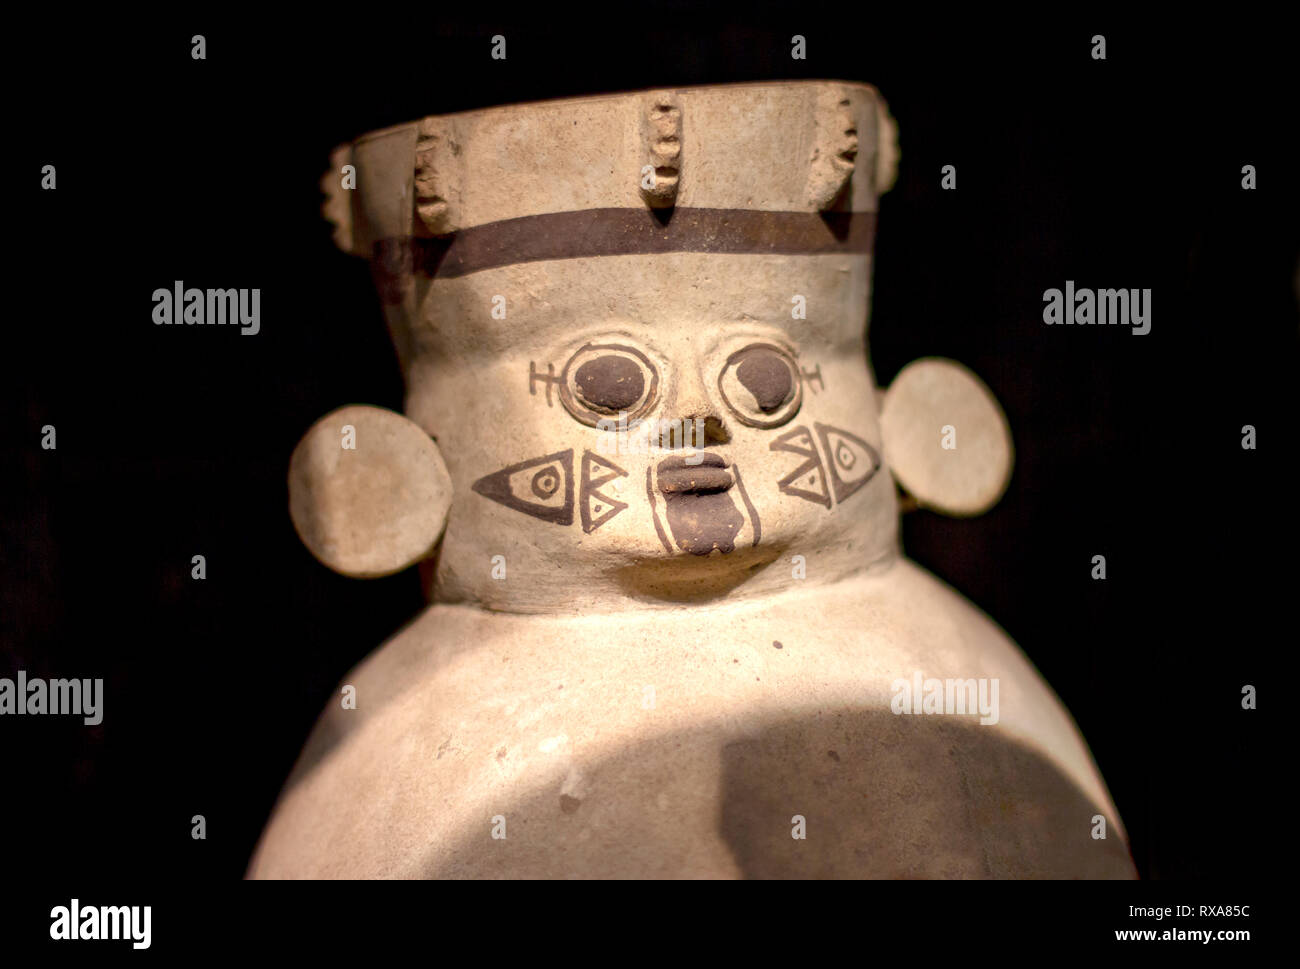 Precolombian ceramics called 'Huacos' from Chancay, a Peruvian culture. Private collection of pre inca pottery. - Stock Image